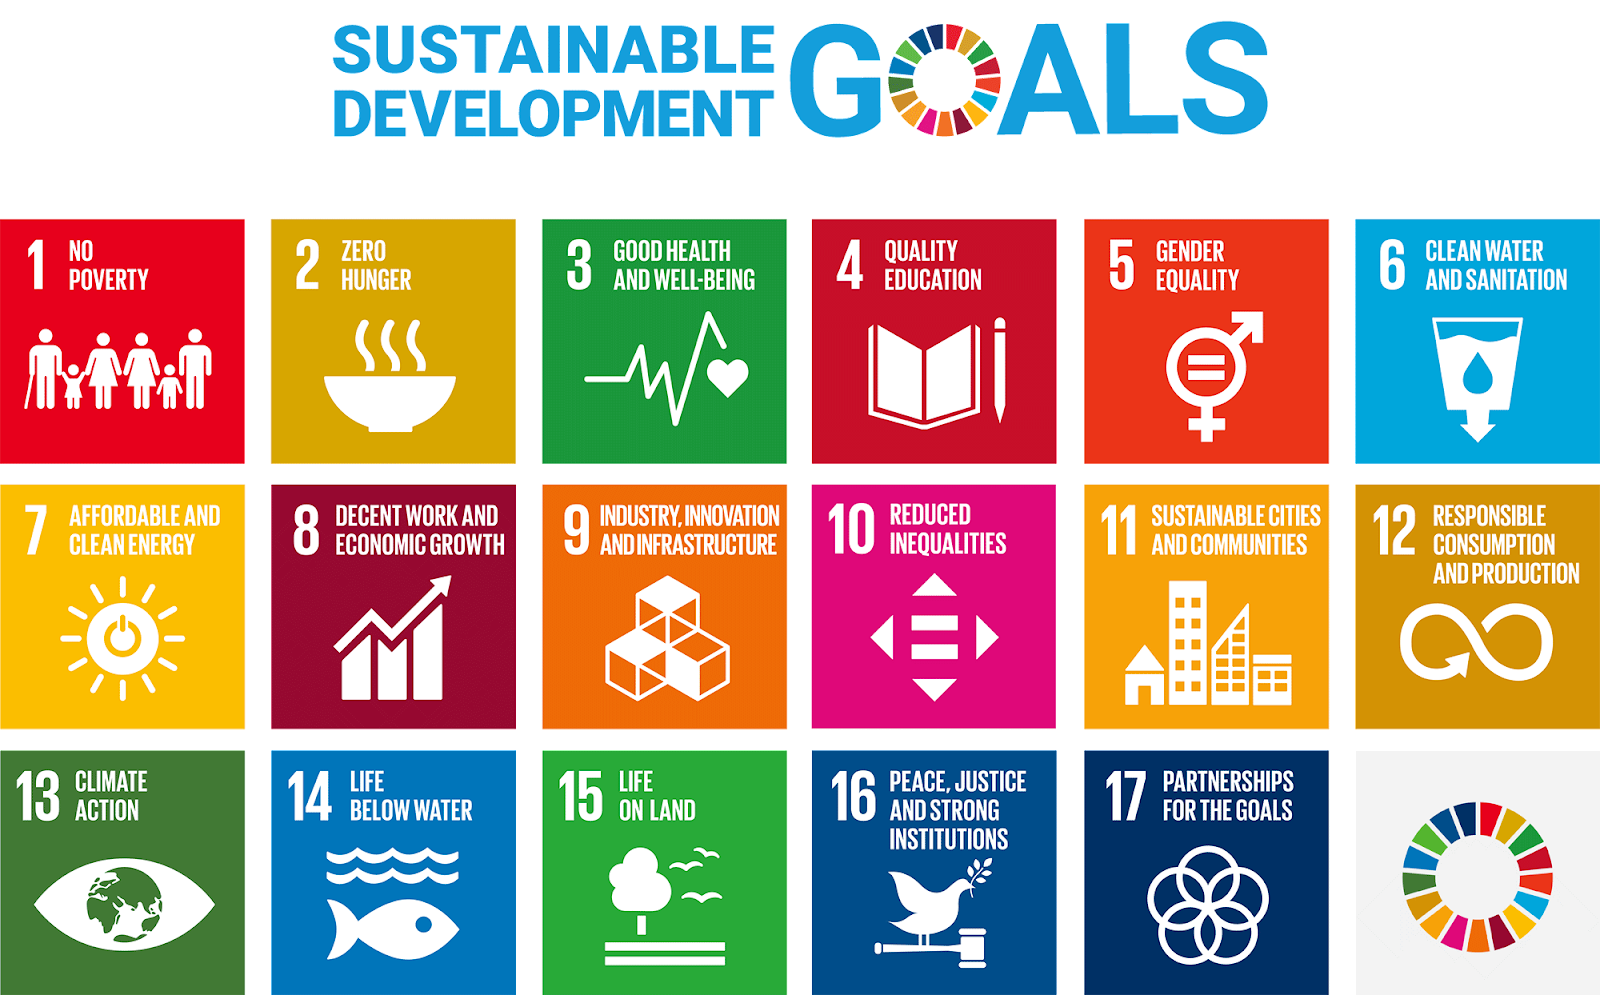 The 17 Sustainable Development Goals (SDGs)